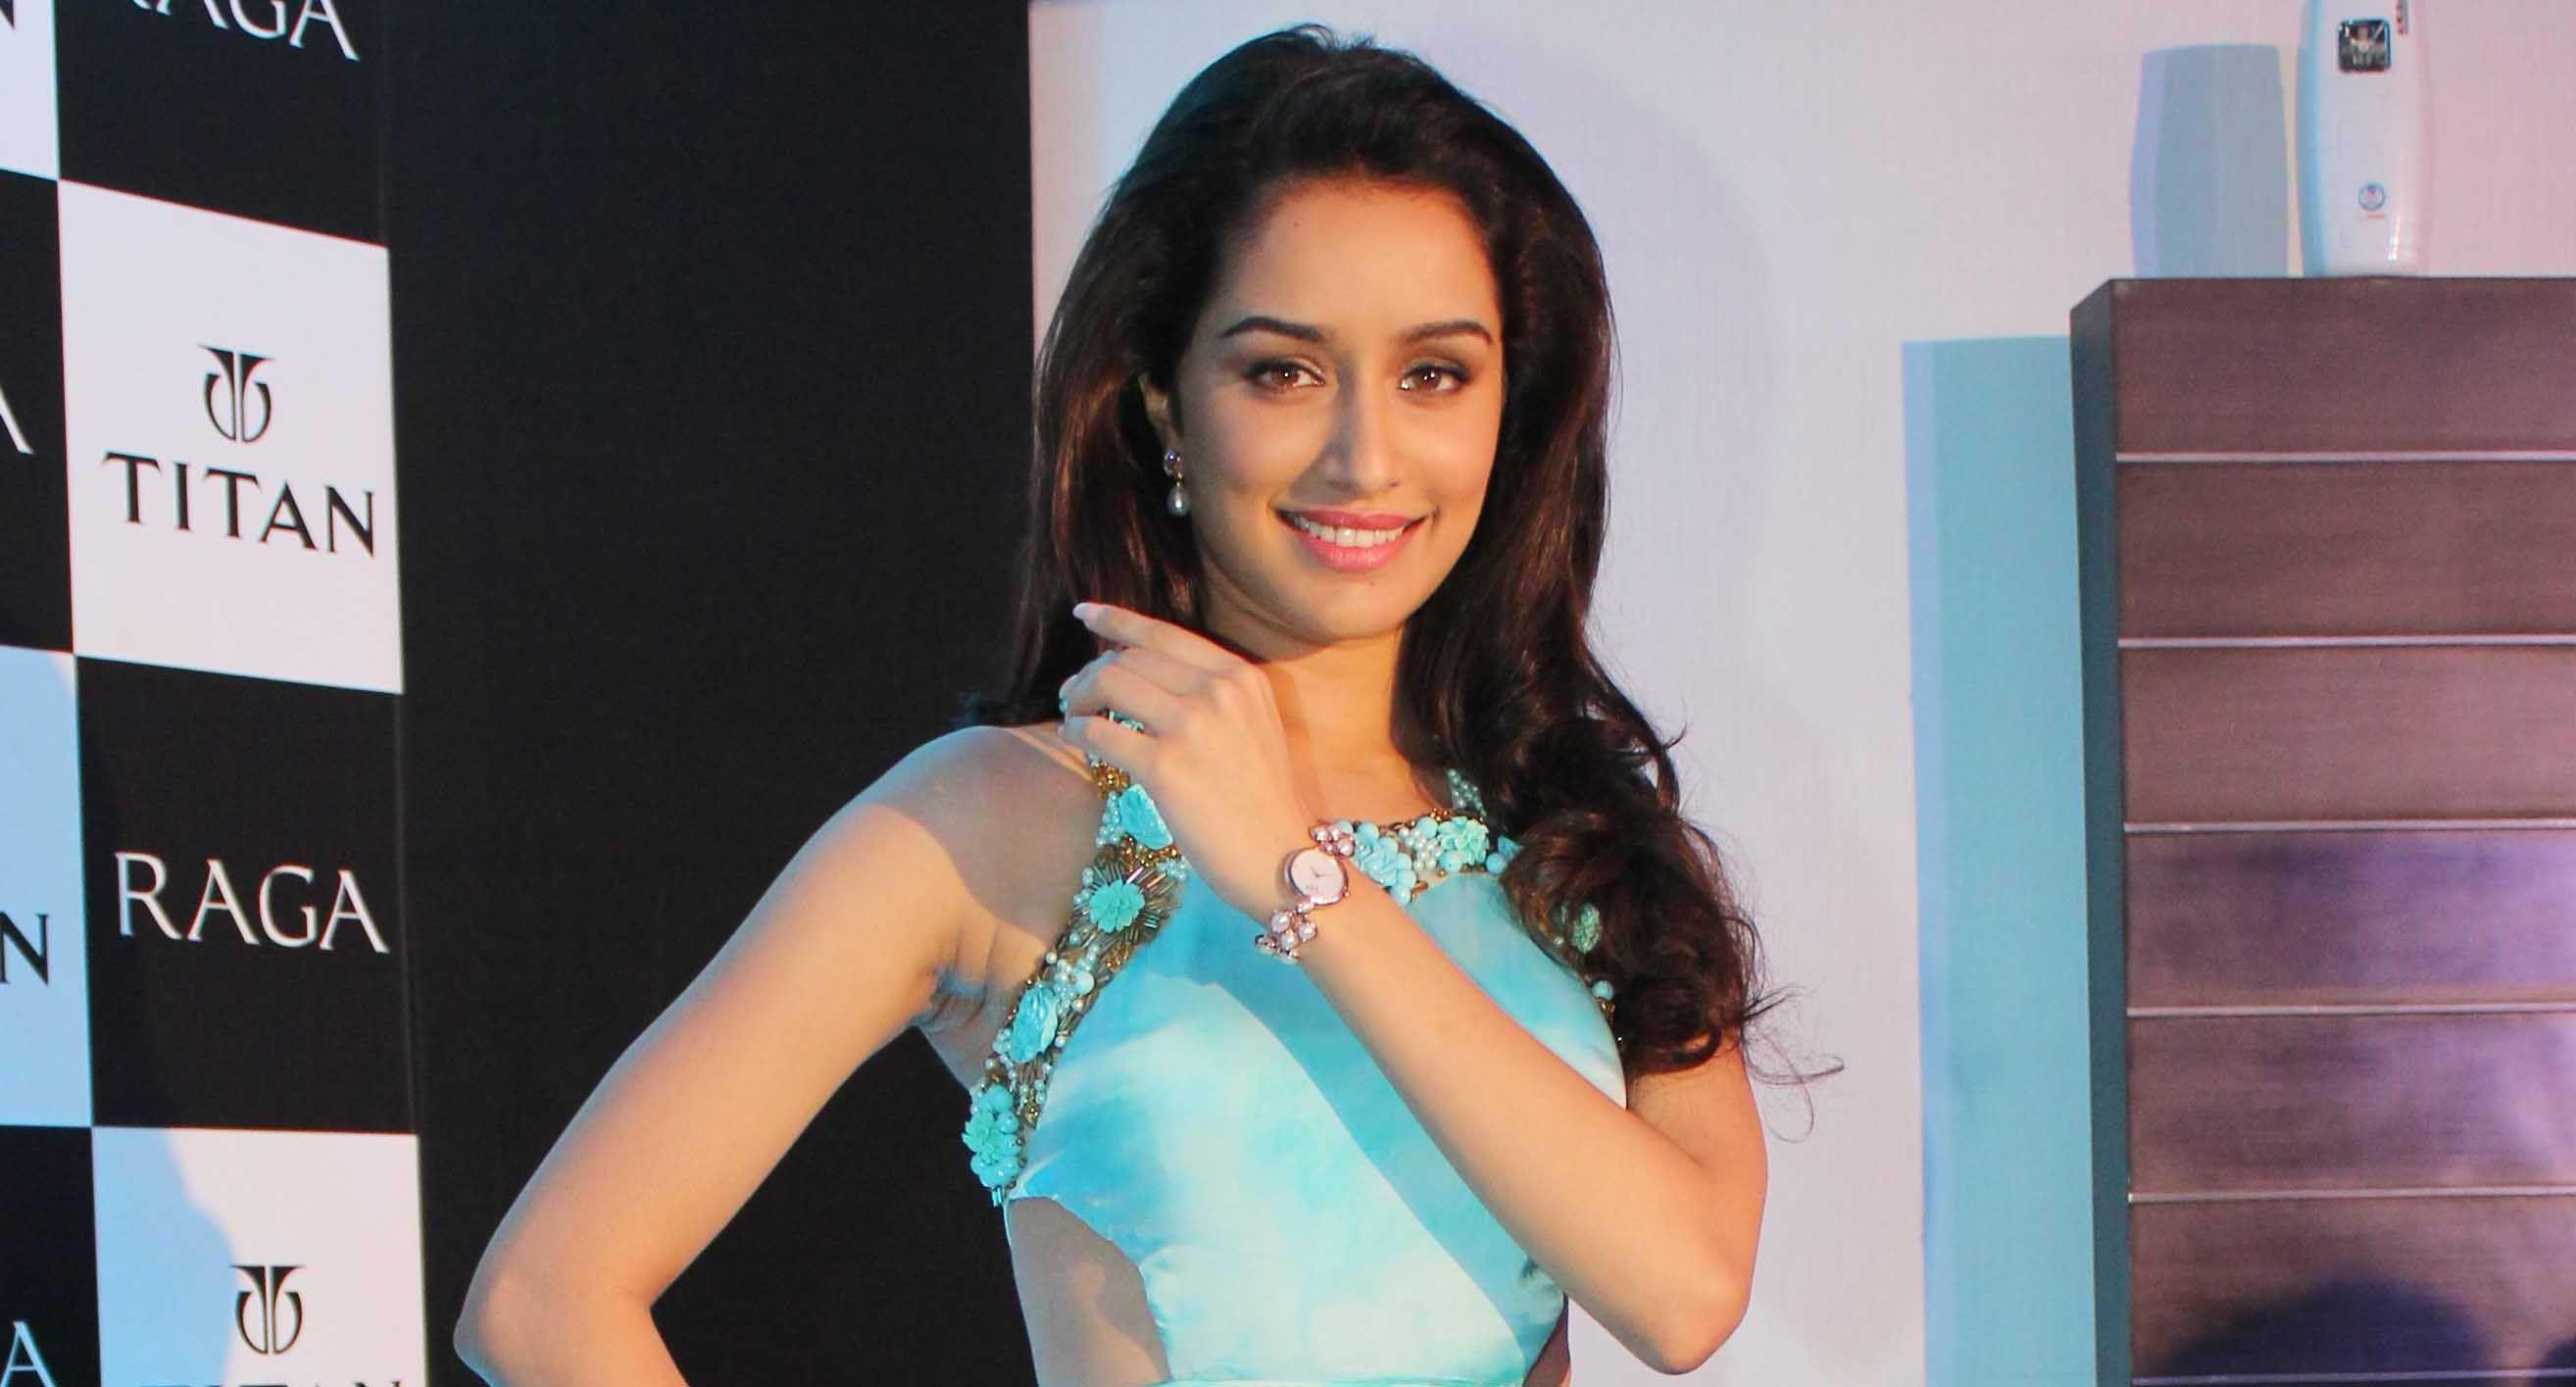 Shraddha Kapoor Smiling Face Backgrounds Hd Mobile Download Wallpapers